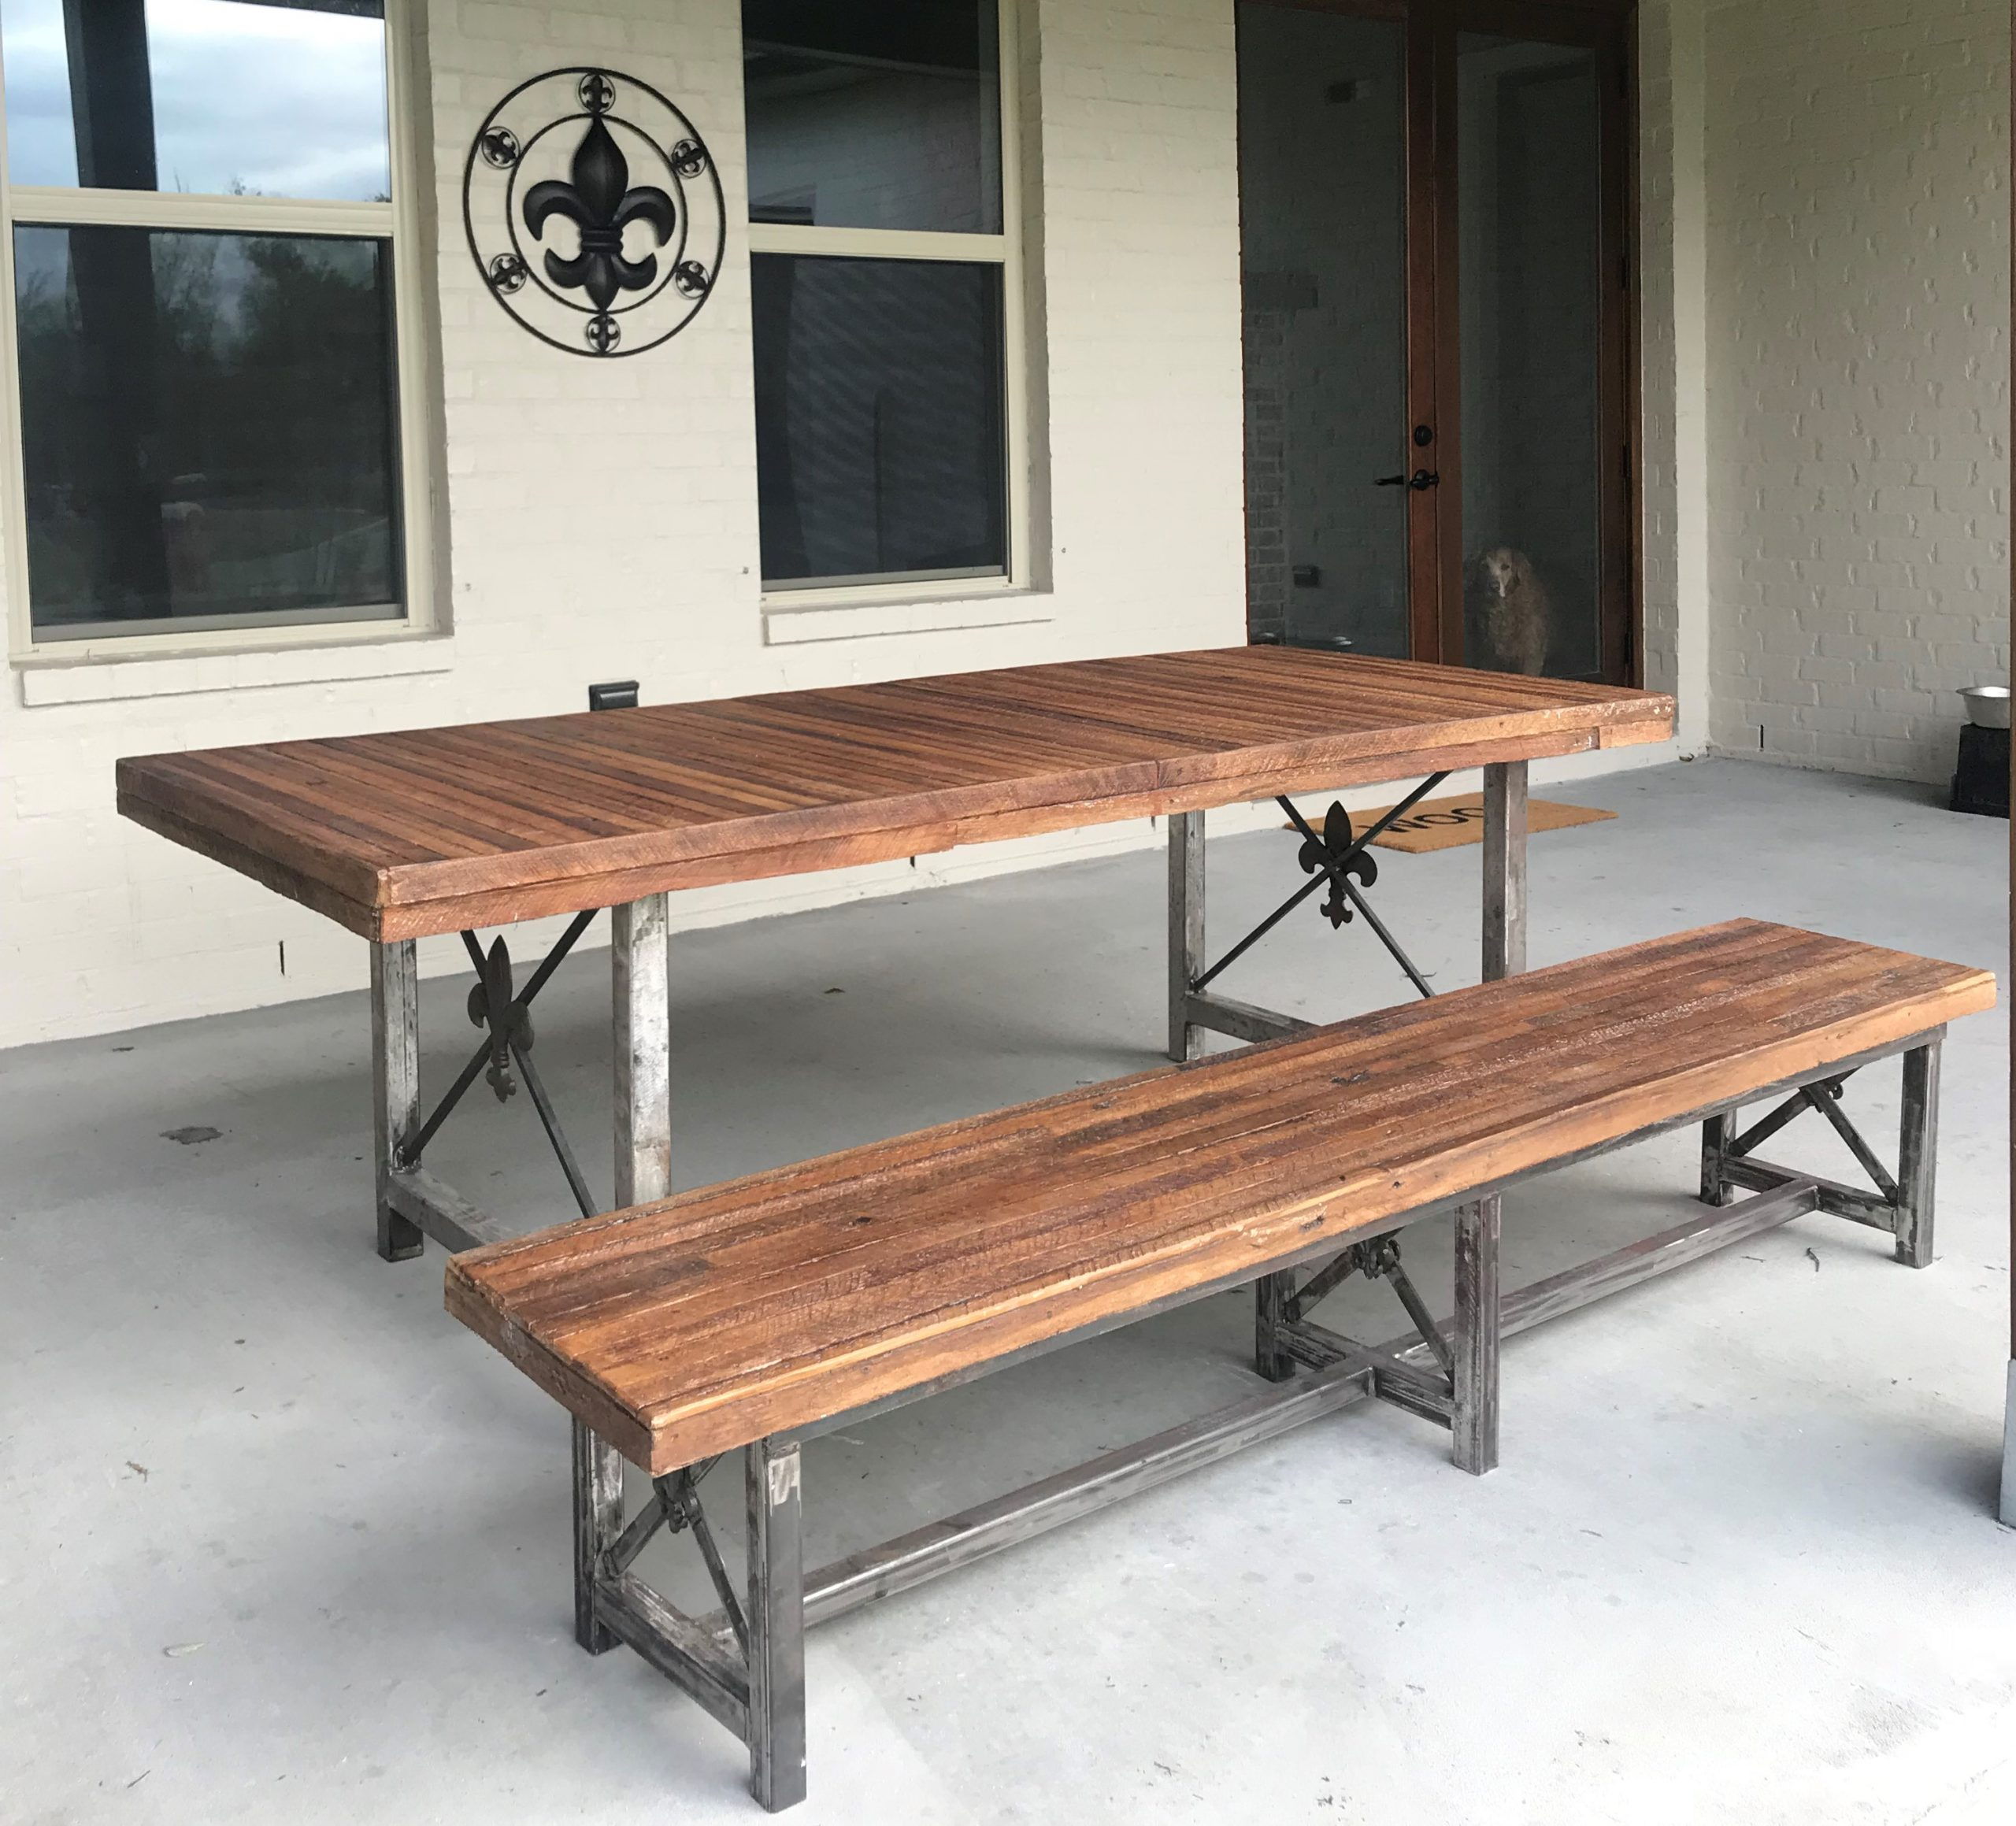 Table and bench made of concrete made to look like wood.